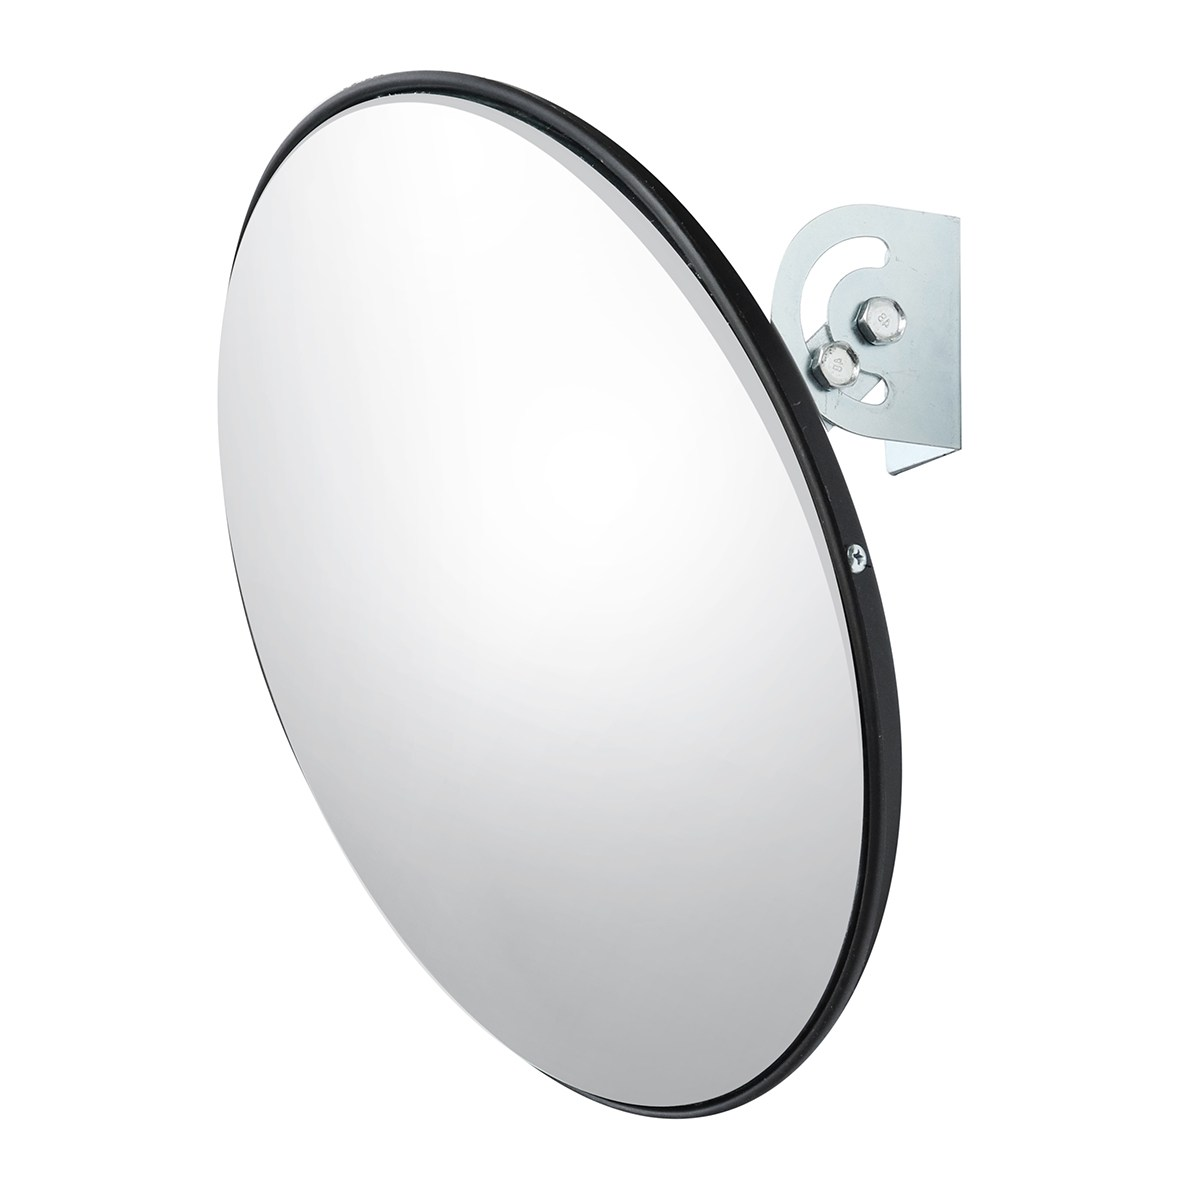 NEW Safurance 45 cm Wide Angle Curved Convex Security Road Mirror For Indoor Burglar Traffic Signal Roadway SafetyNEW Safurance 45 cm Wide Angle Curved Convex Security Road Mirror For Indoor Burglar Traffic Signal Roadway Safety